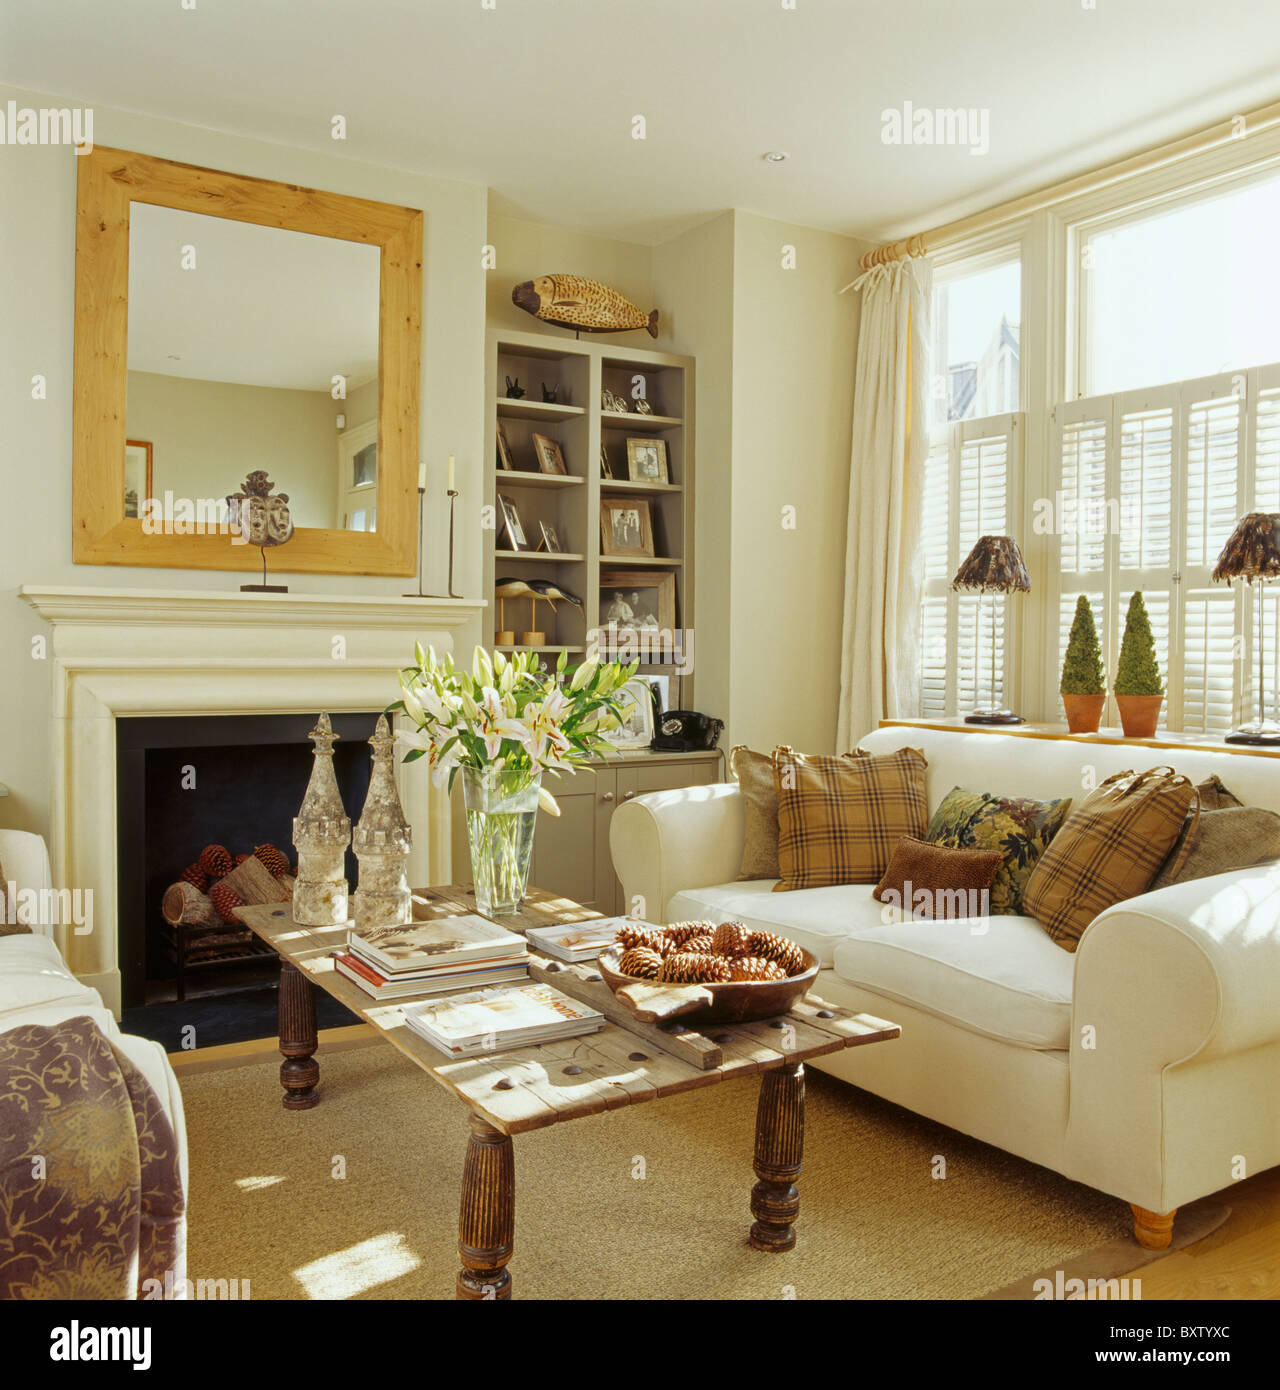 rustic wood table in front of cream sofa with brown cushions in rh alamy com round coffee table in front of sofa round coffee table in front of sofa